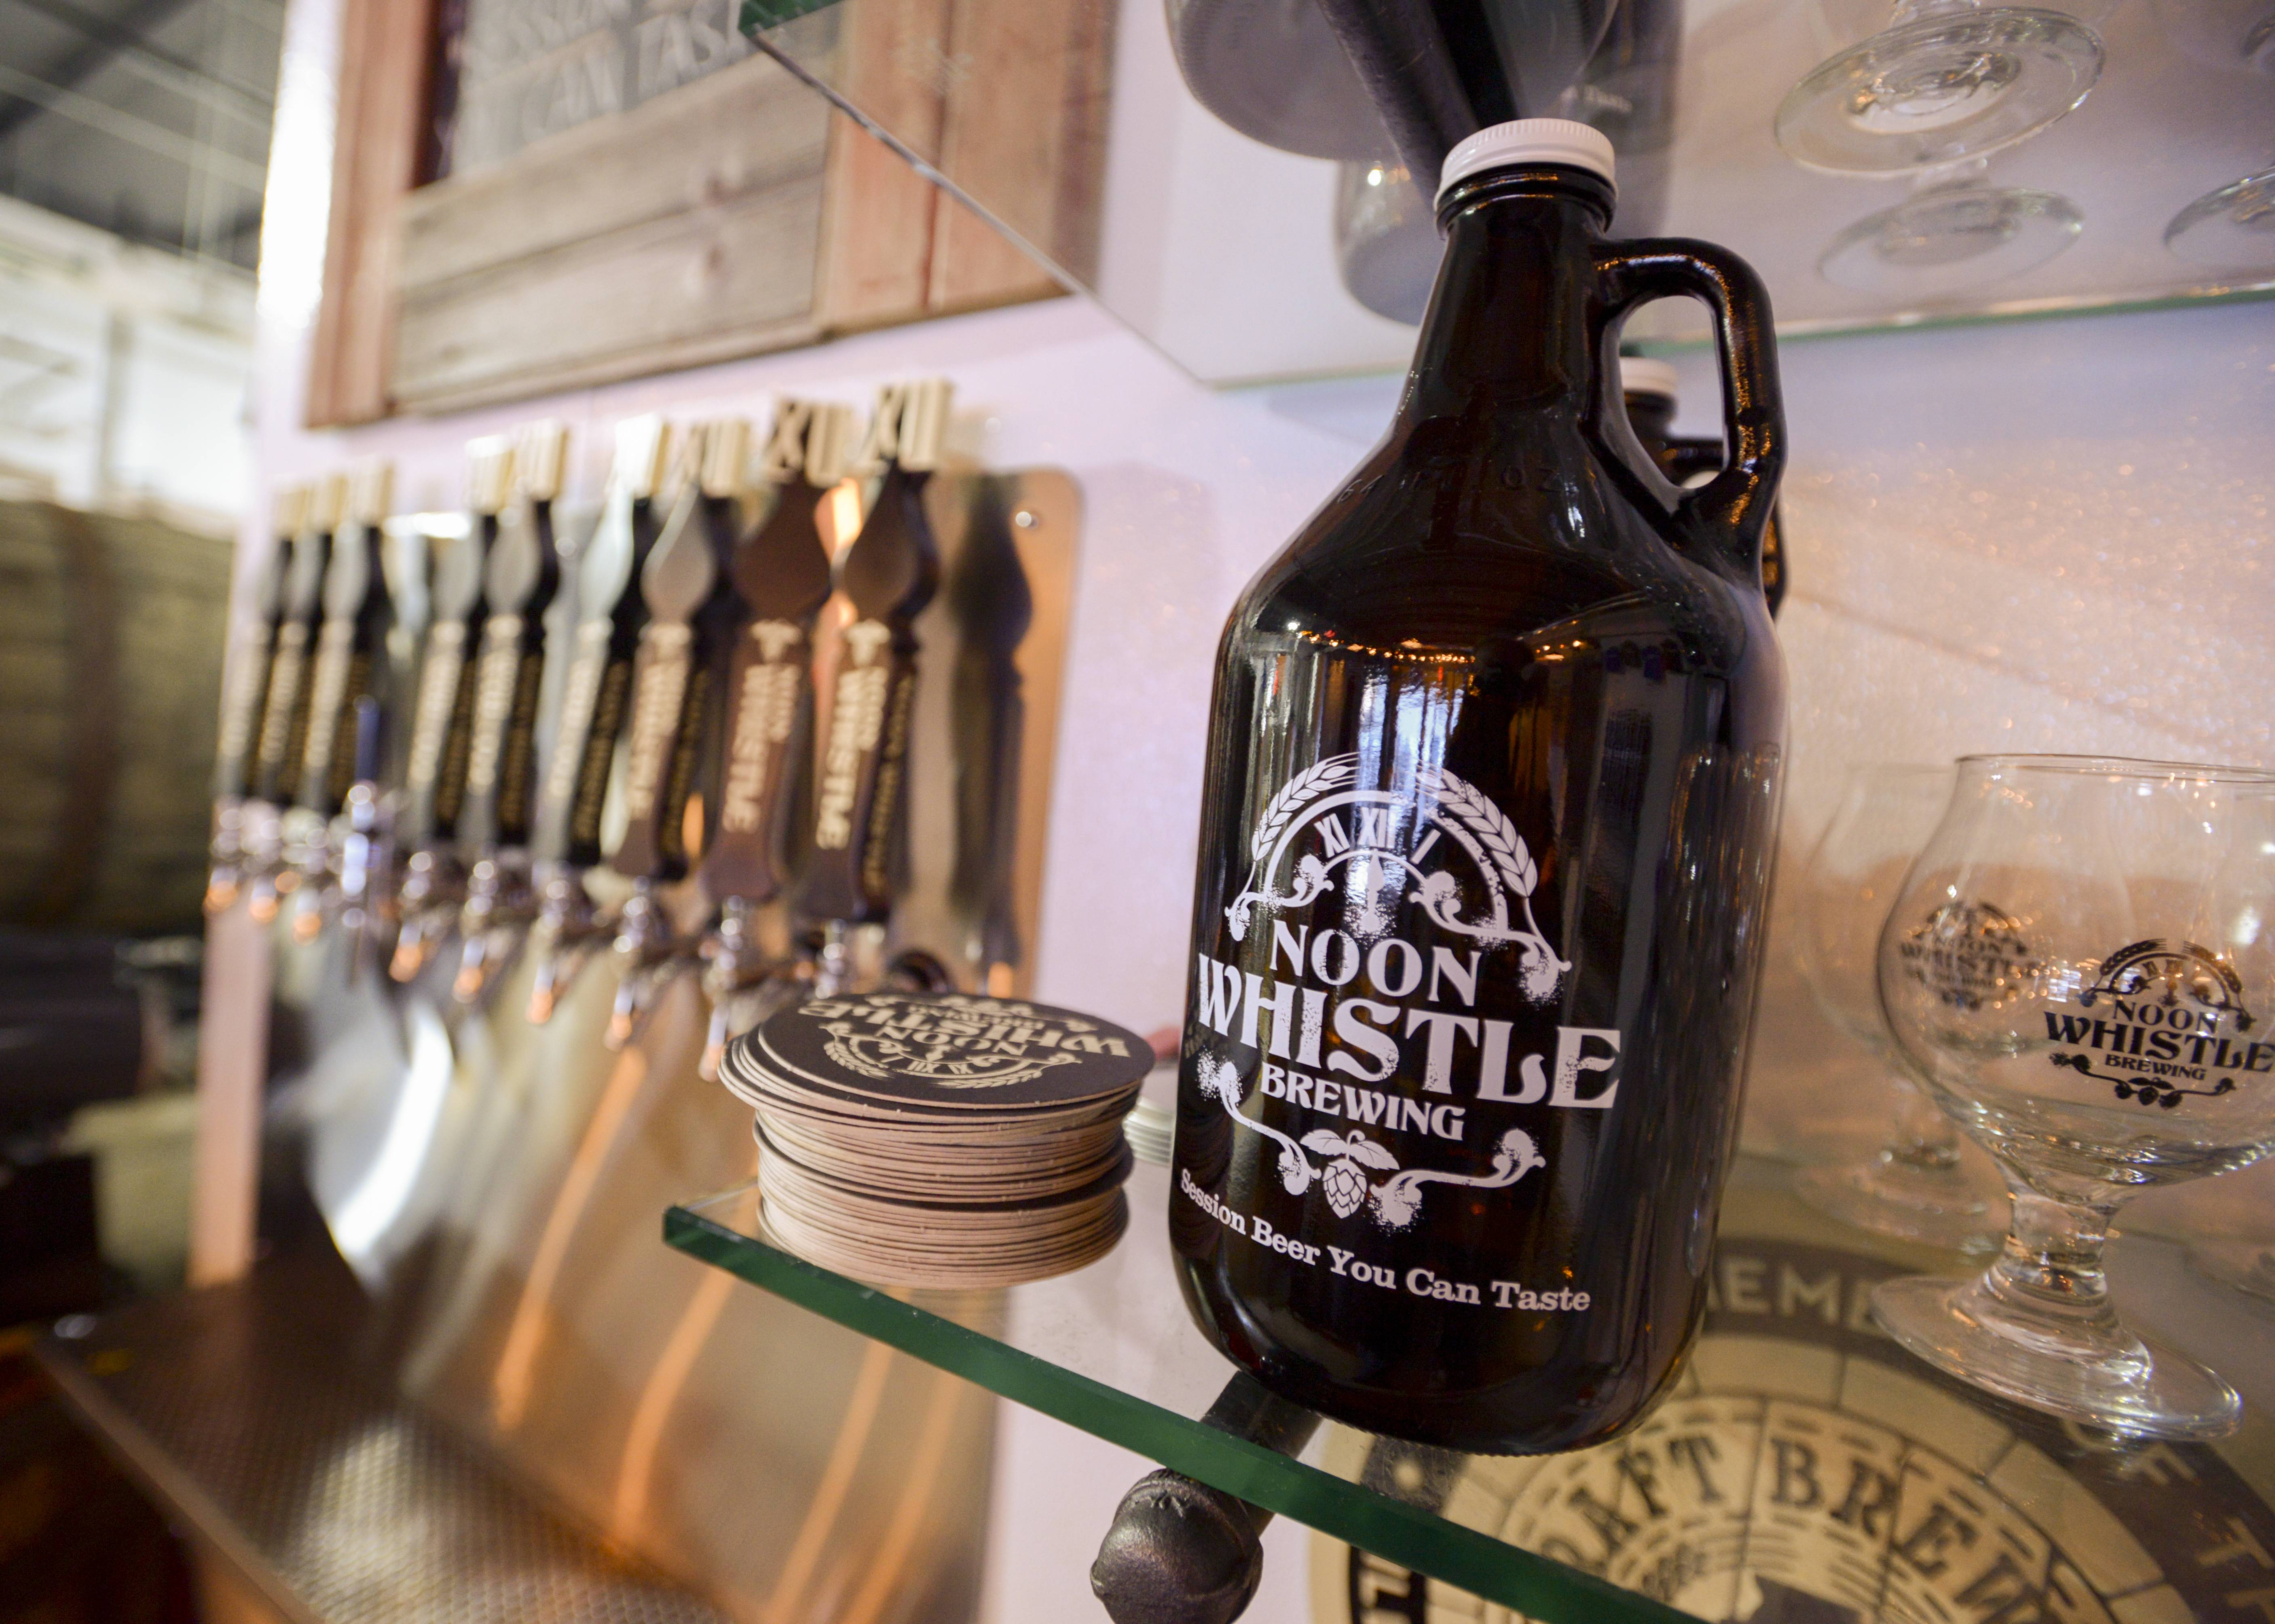 Selling specialty craft beers in Lombard since late 2014, Noon Whistle Brewing now wants to open a second location, this one in Naperville.